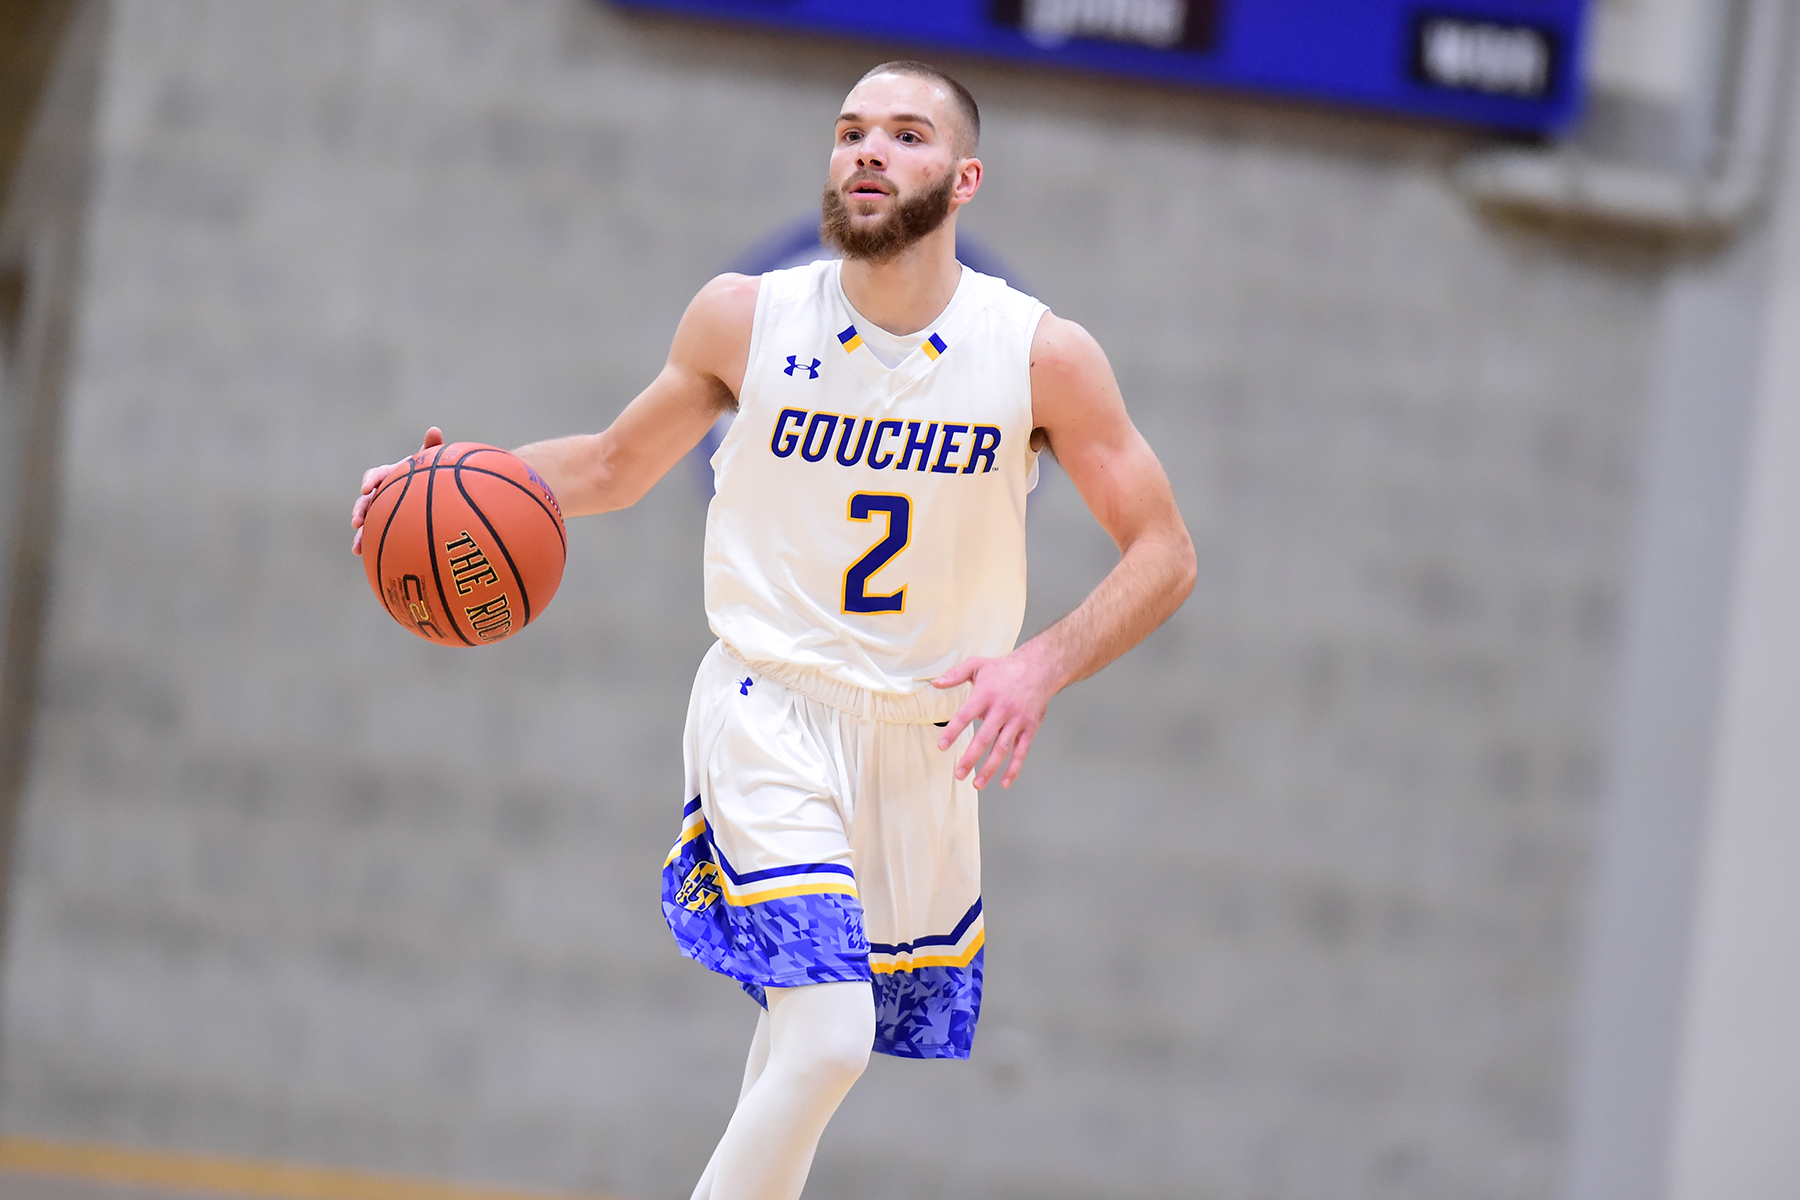 Men's Basketball Unable to Cool Hot Shooting Gwynedd Mercy in Home Loss